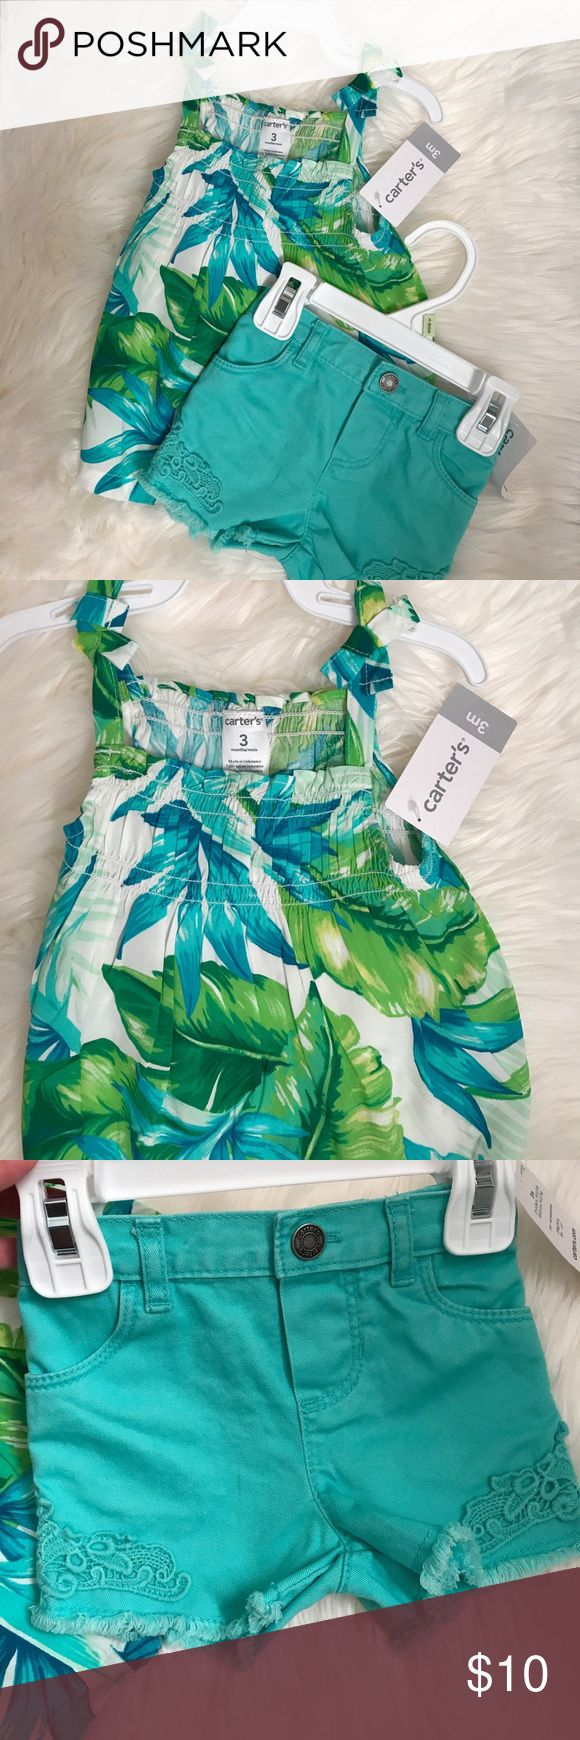 Carters infant girl outfit Brand new, didn't get a chance to wear!! Super cute floral top and turquoise shorts both size 3m. :) Carter's Shirts & Tops Tank Tops